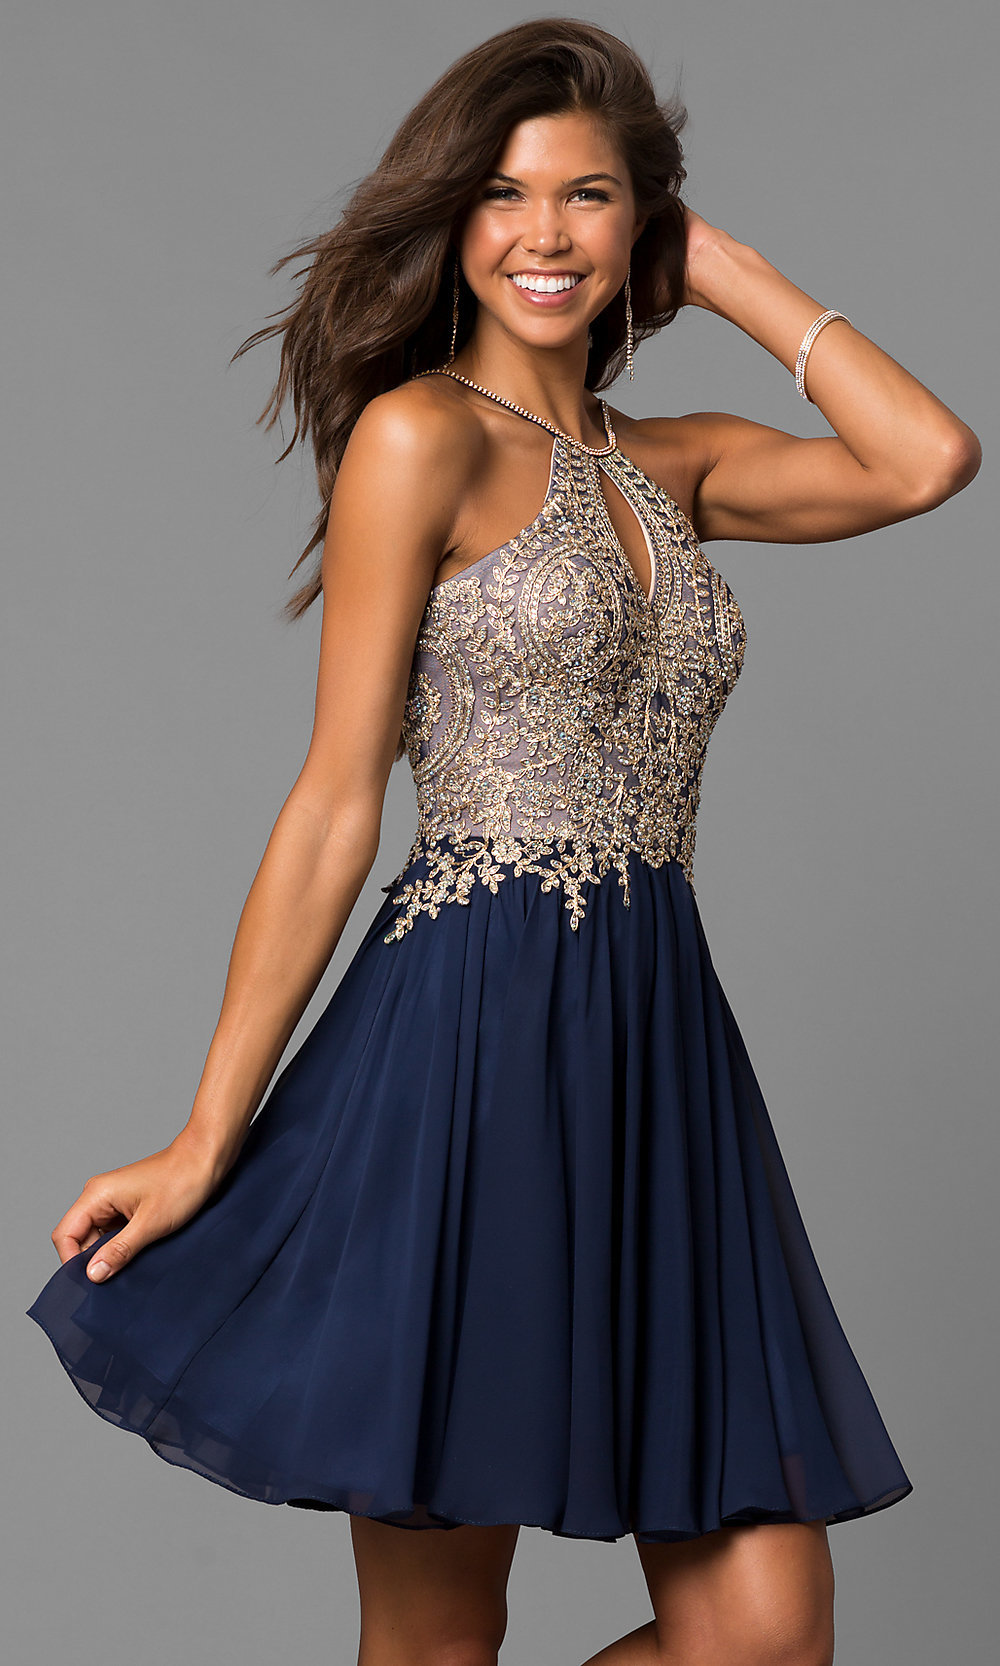 Prom Shoes For Navy Dress